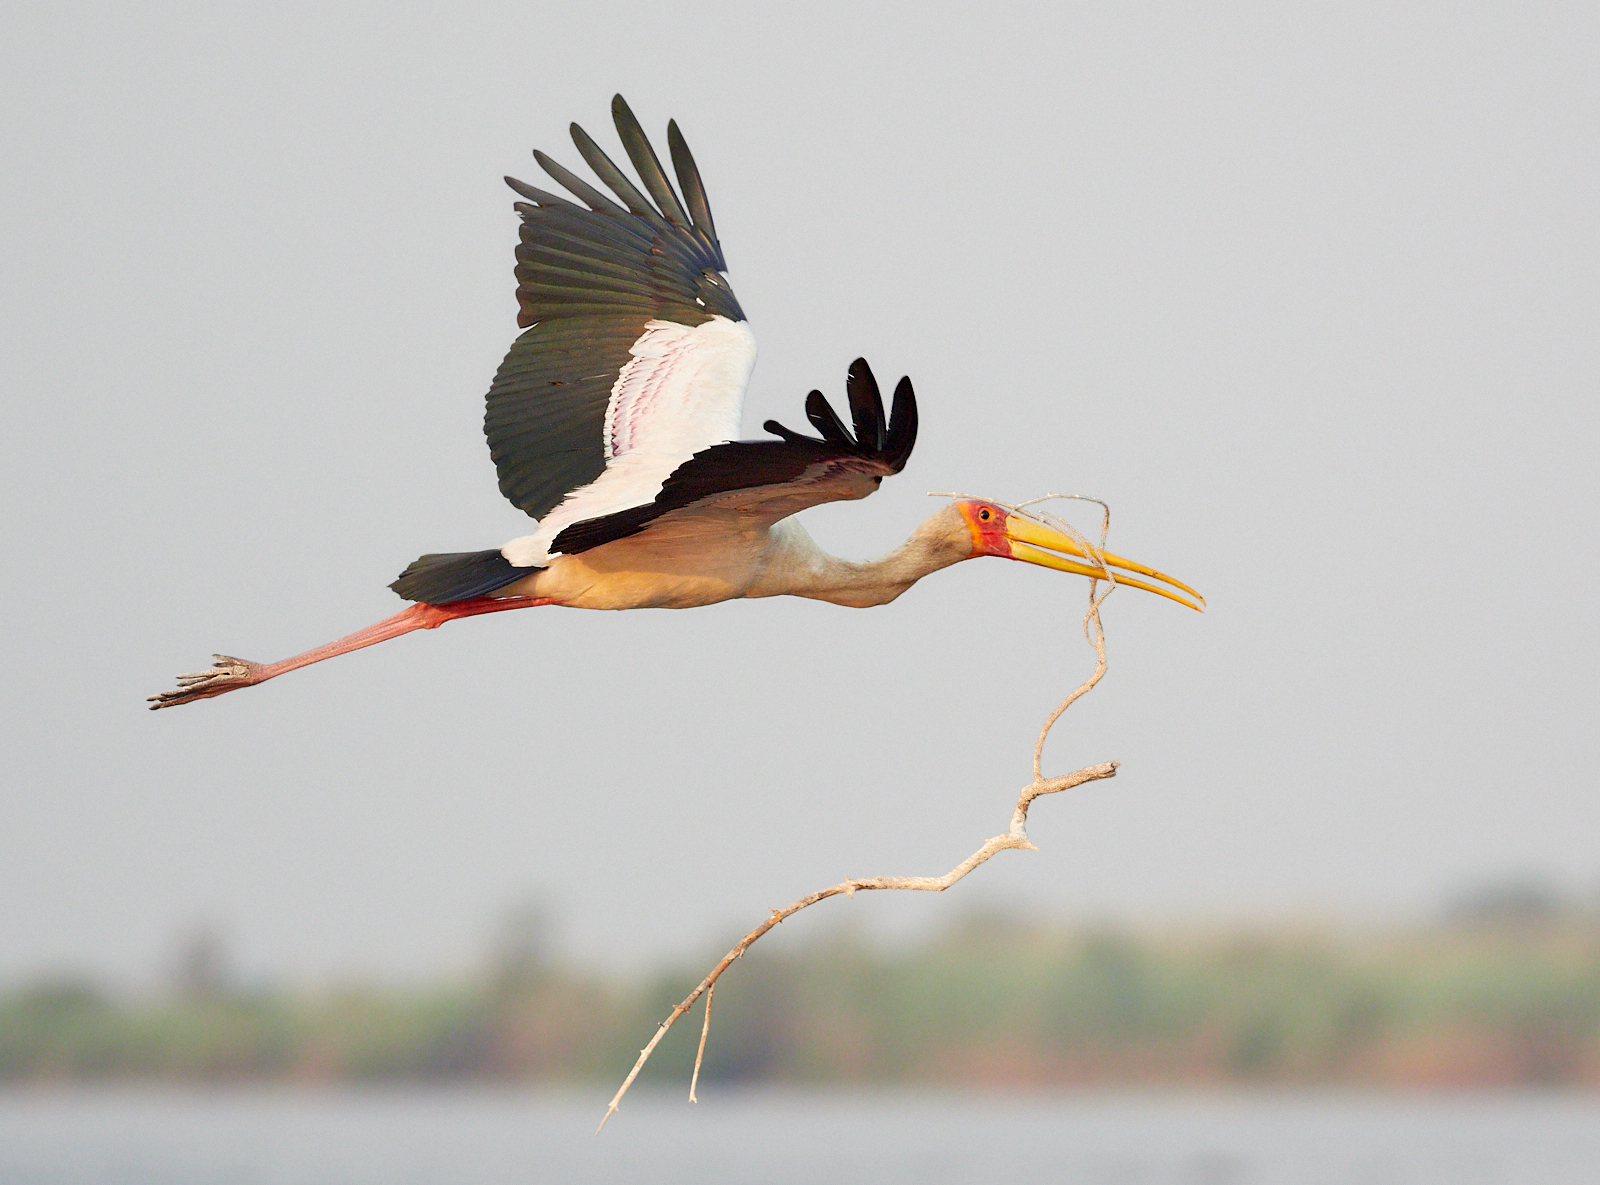 Yellow billed stork with nesting material 1600x1200 sRGB.jpg